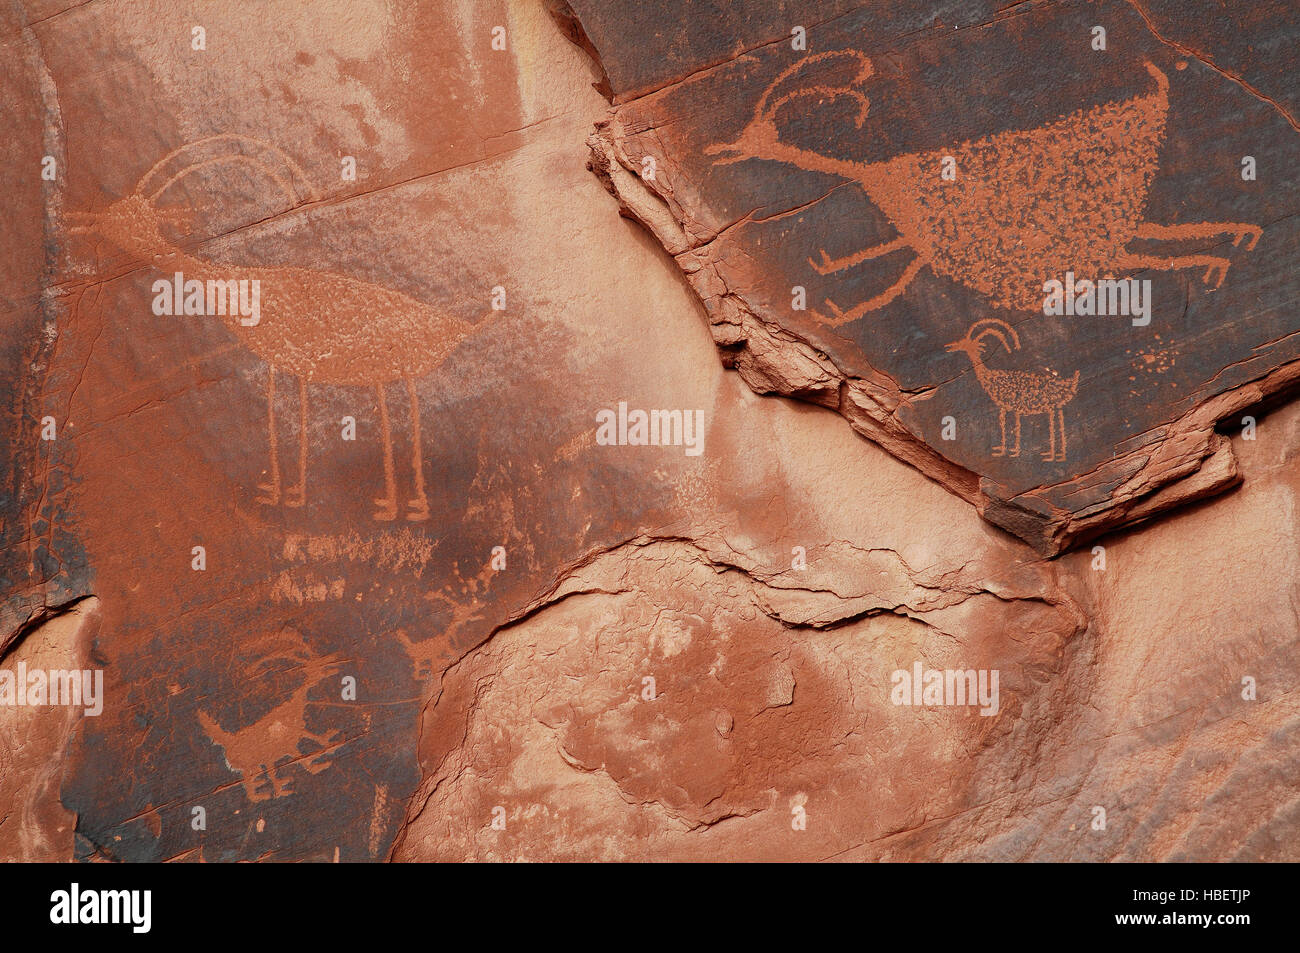 Bighorn Sheep, Eye of the Sun Anasazi Petroglyphs, Monument Valley Navajo Tribal Park, Navajo Nation Reservation, - Stock Image